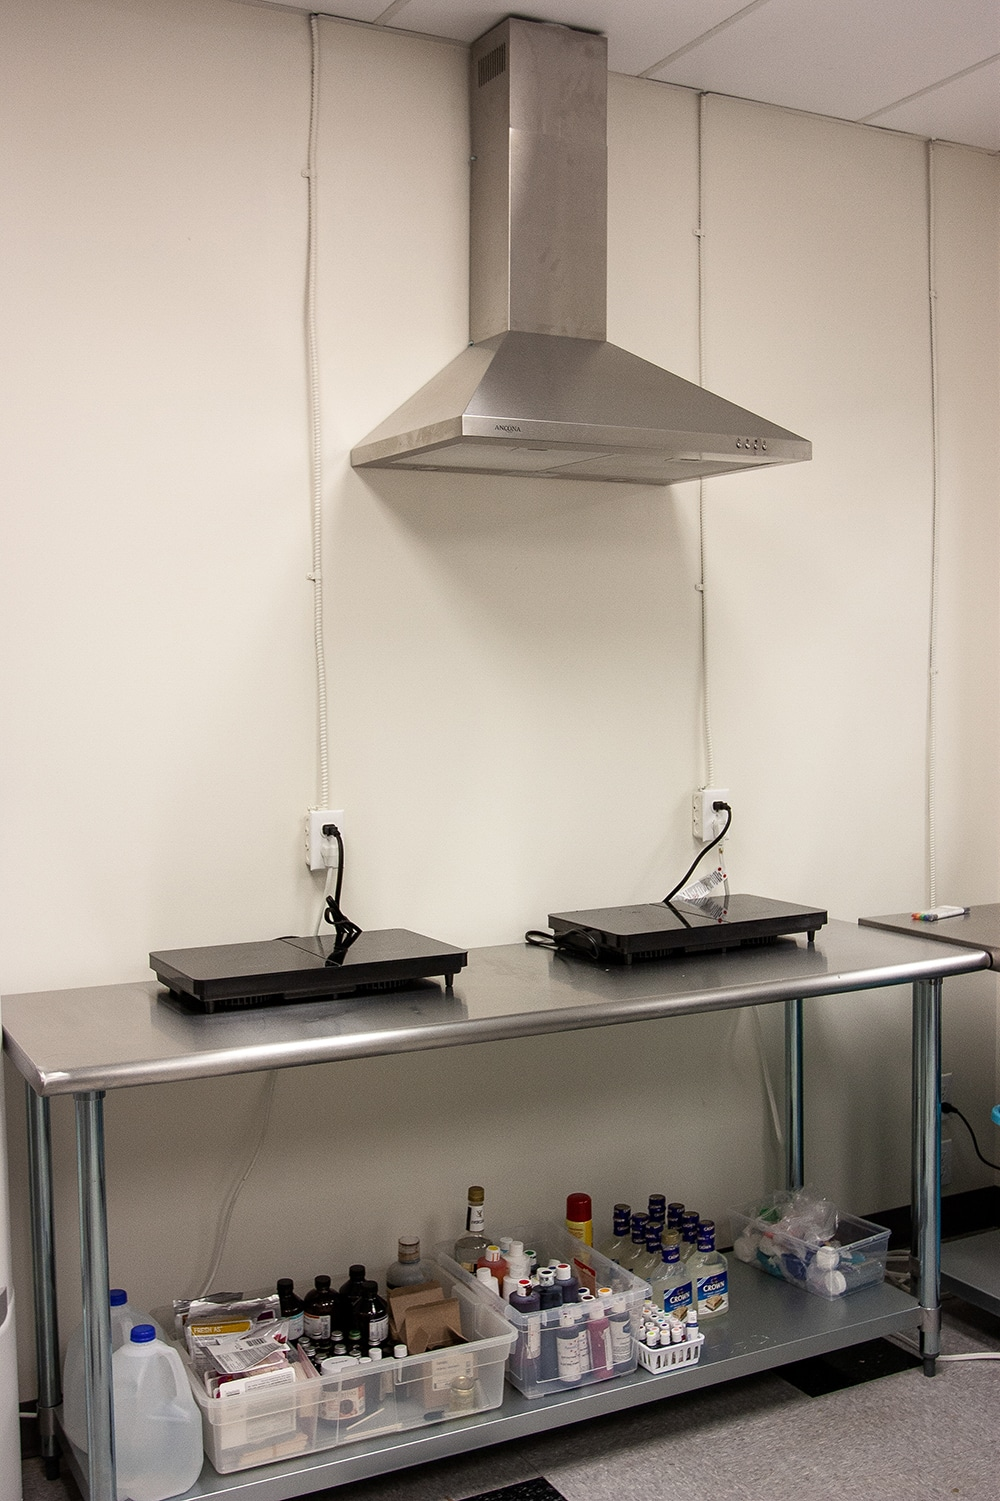 range and cooktops in bakery